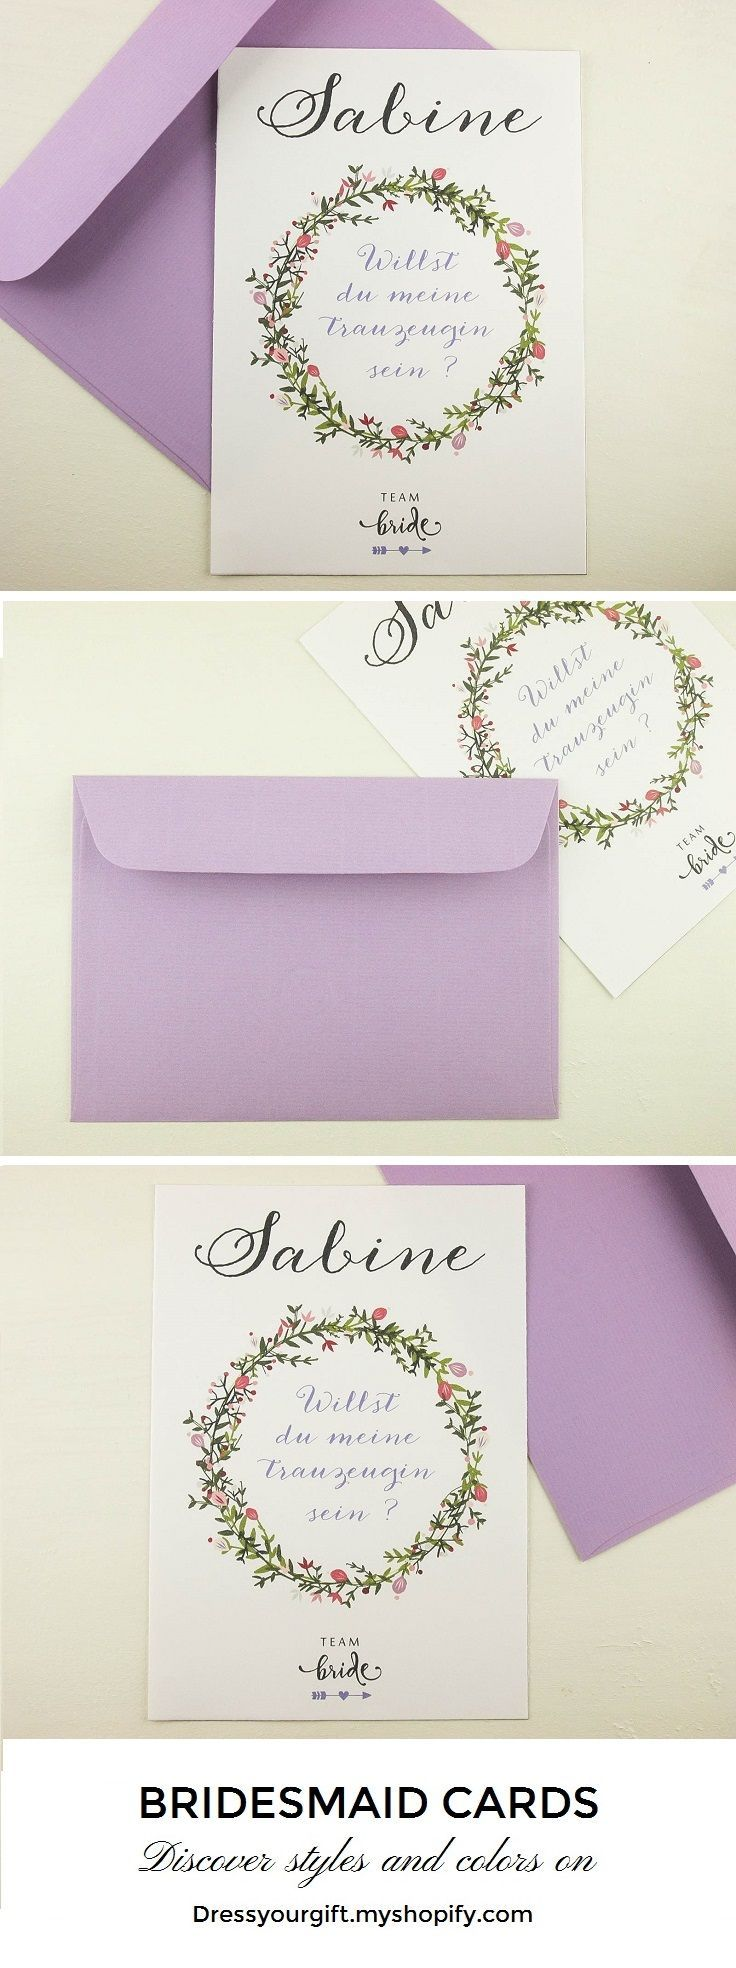 Violet personalized bridesmaid bridal shower invitation, maid of honor card and envelope flower themed #maidofhonorproposal #demoiselledhonneur #damadehonor #trauzeugin #brautjungfern